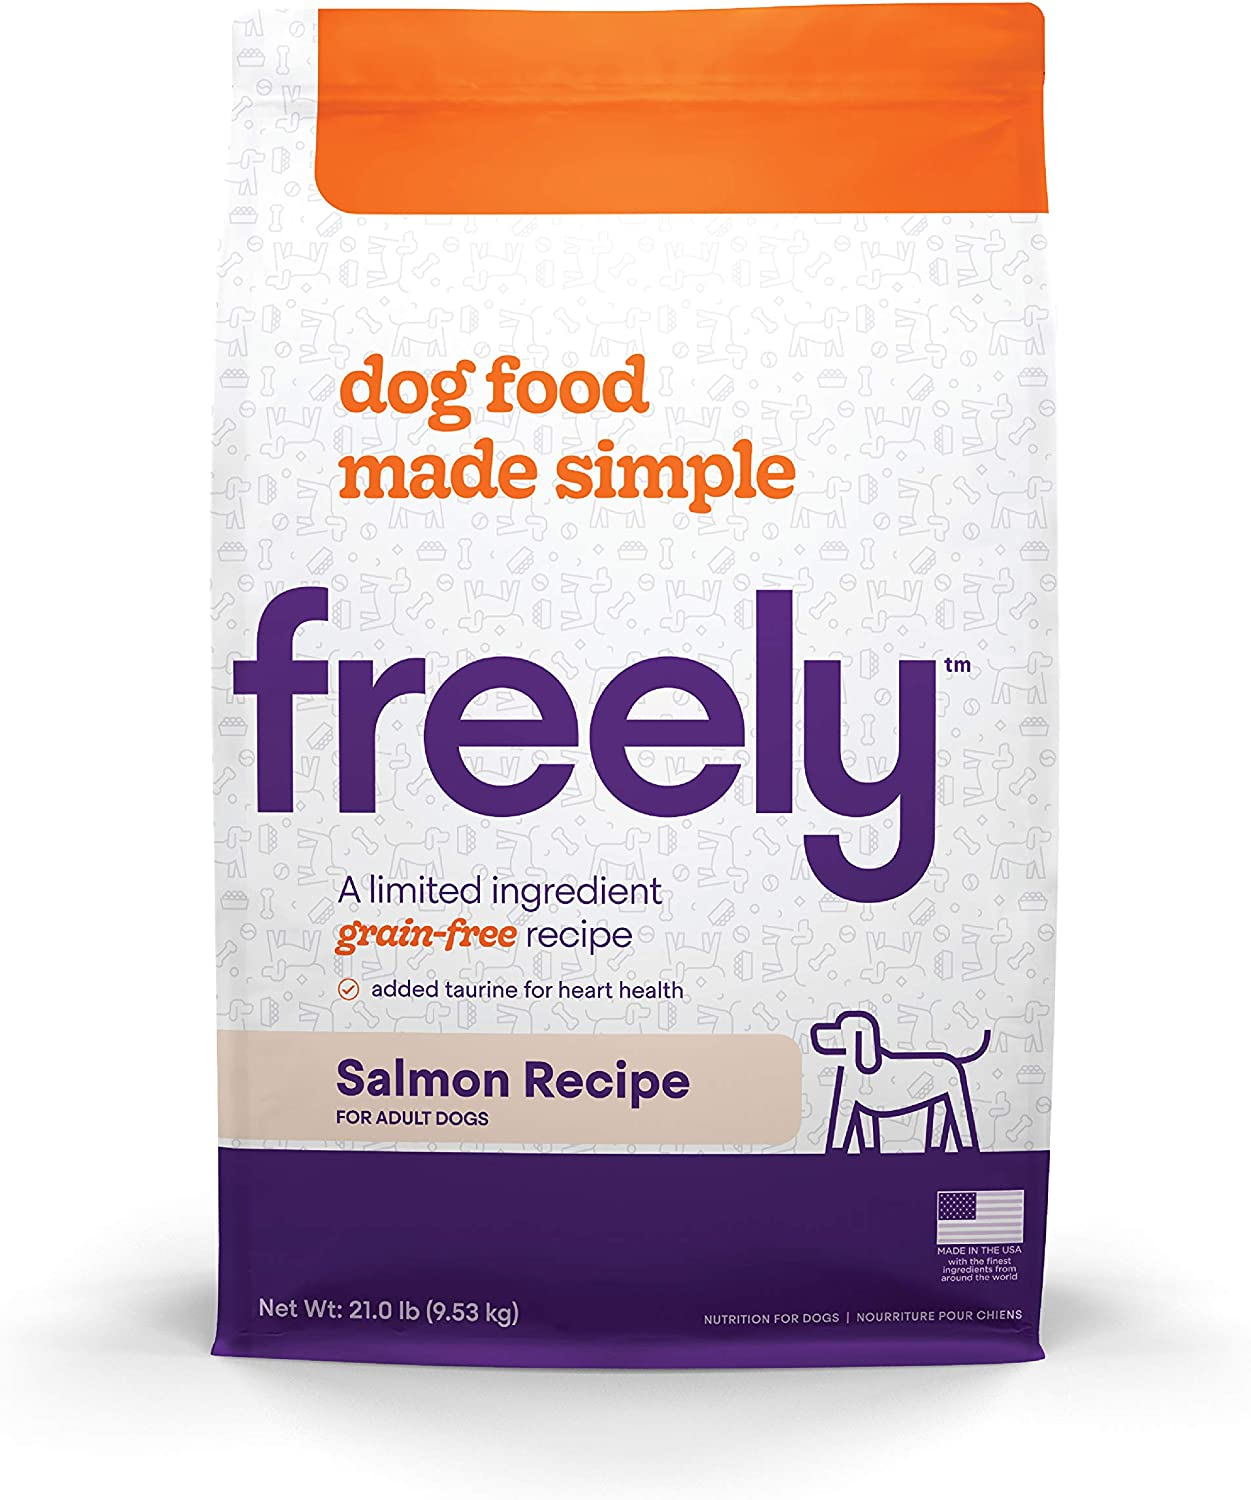 Freely Limited Ingredient Diet, Grain Free Dog Food, Natural Adult Dry Dog Food